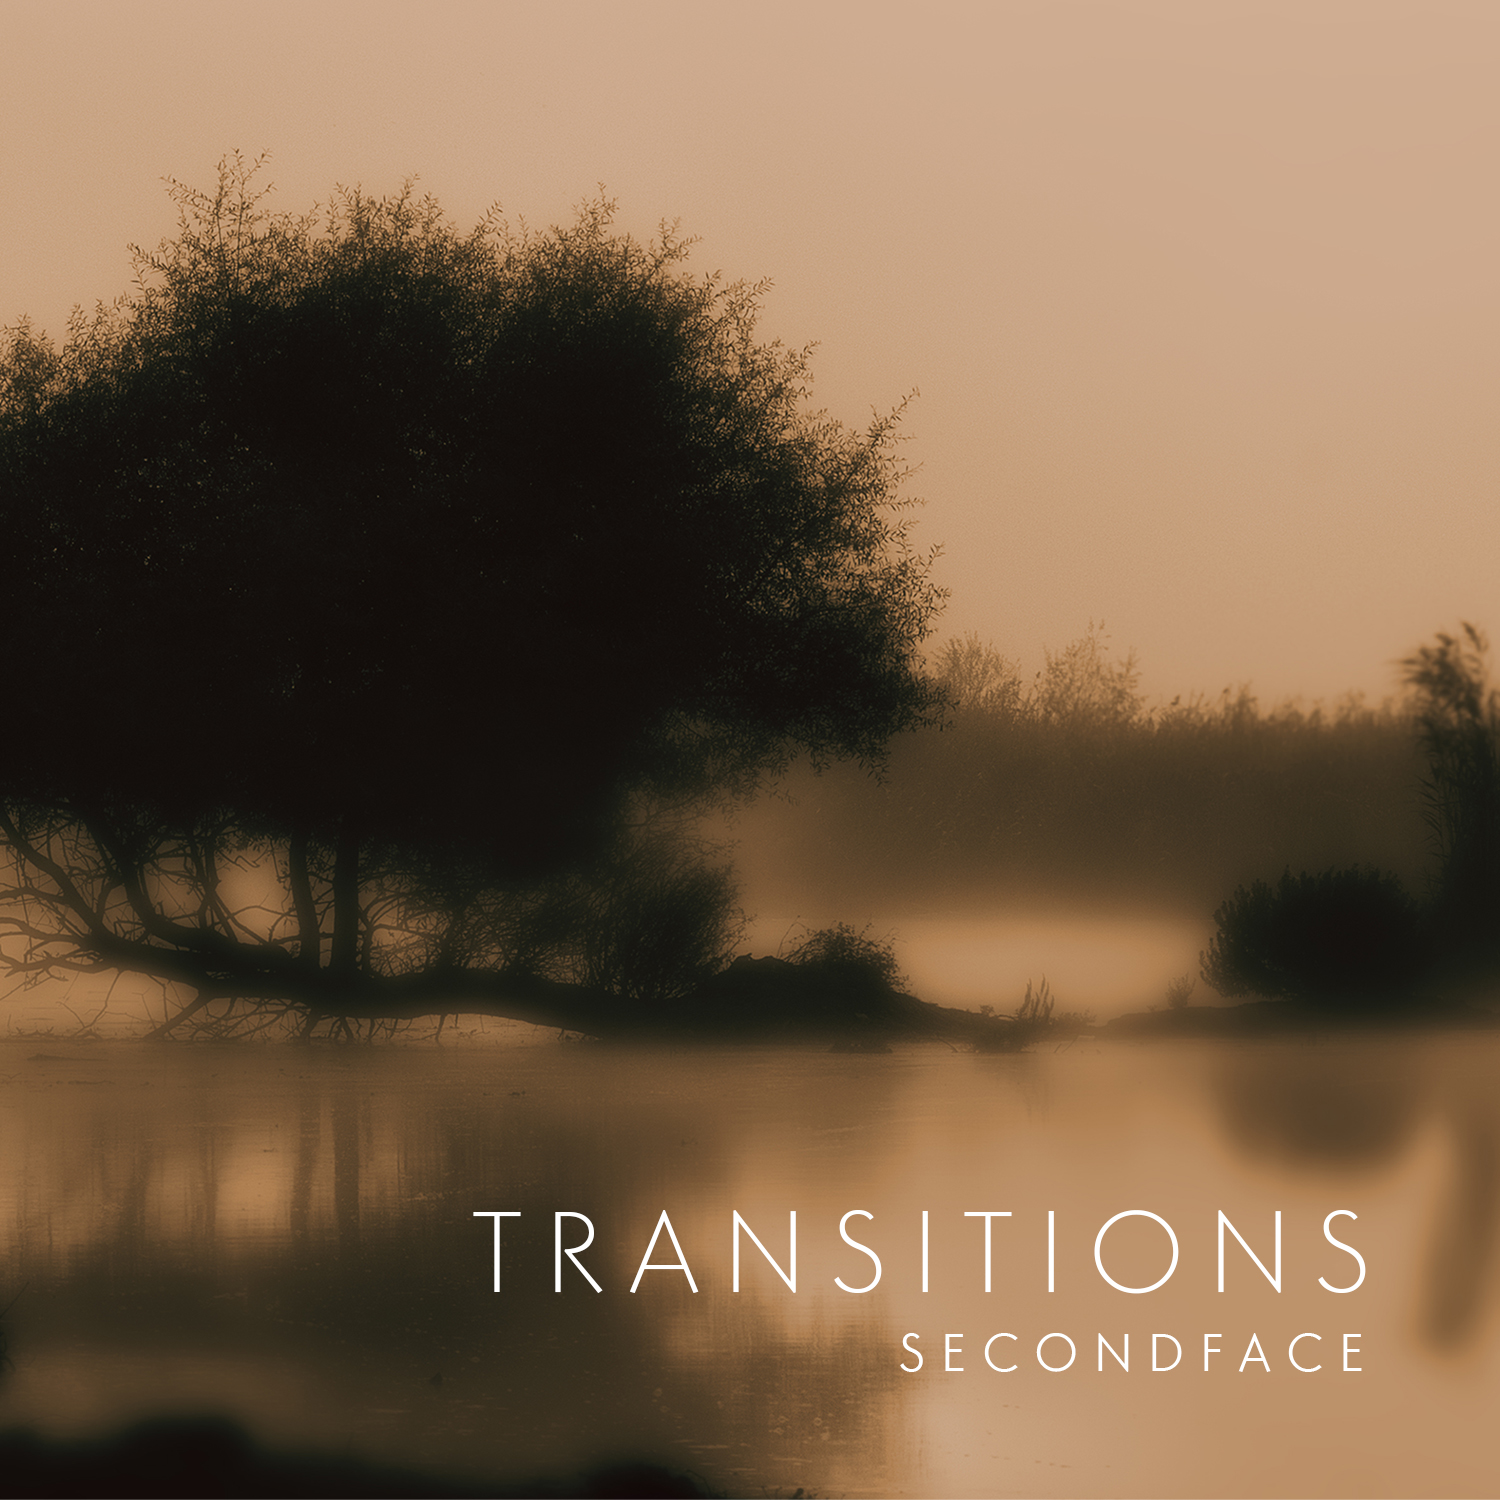 Secondface Transitions